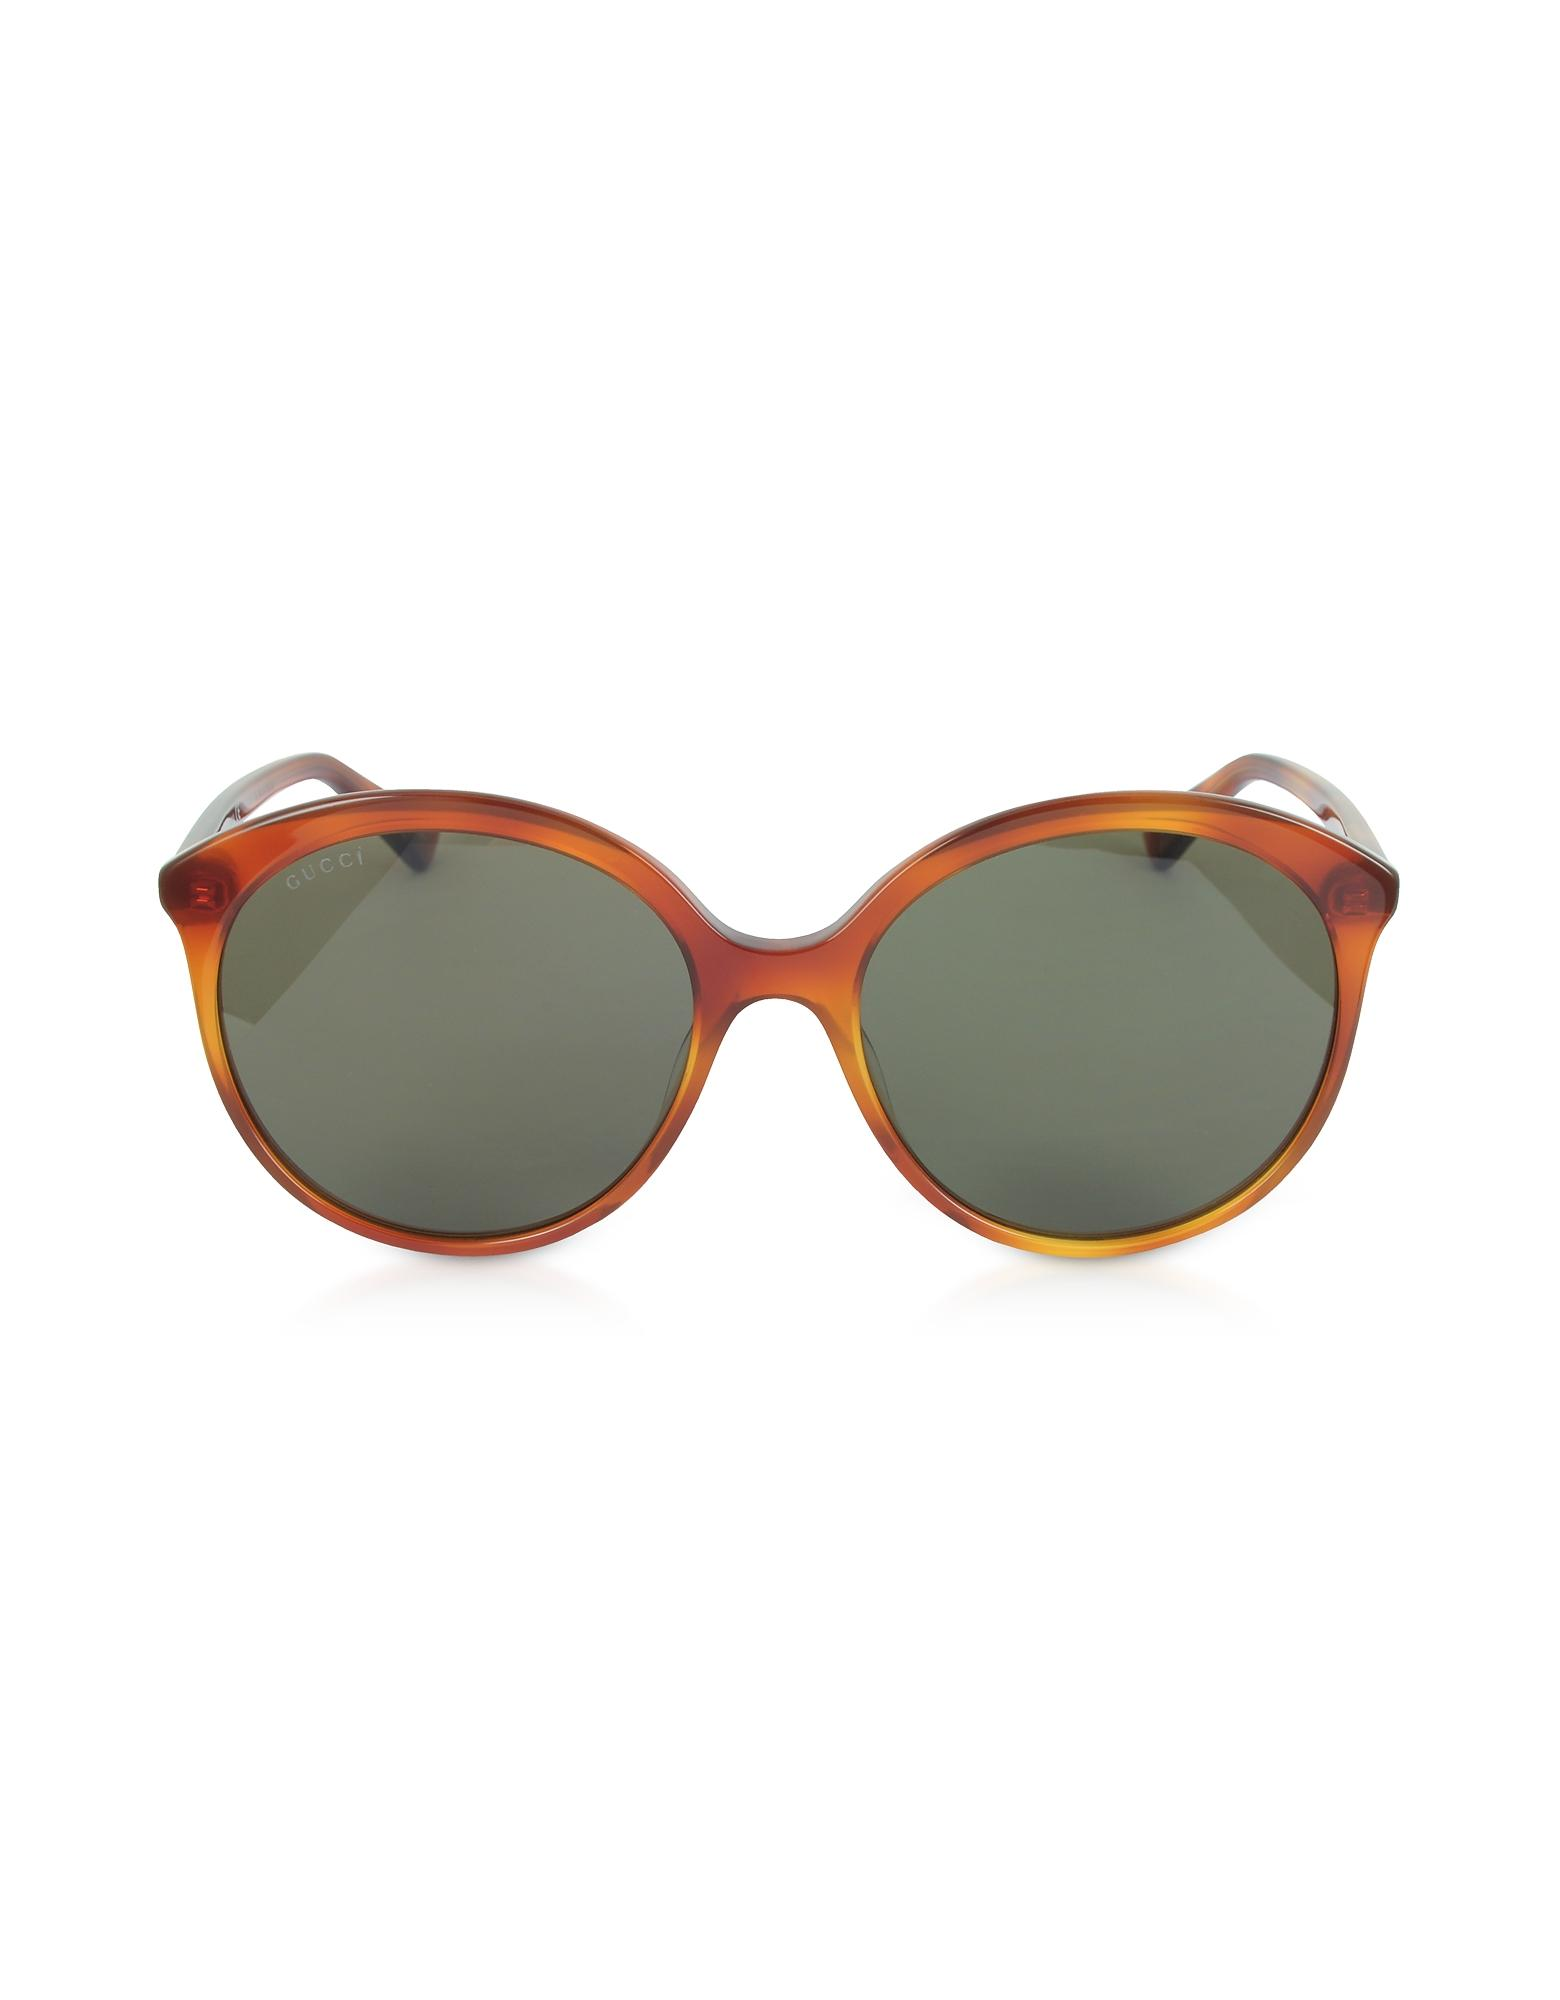 570b5701fec Gucci - GG0257S Specialized Fit Round-frame Havana Brown Acetate Sunglasses  - Lyst. View fullscreen